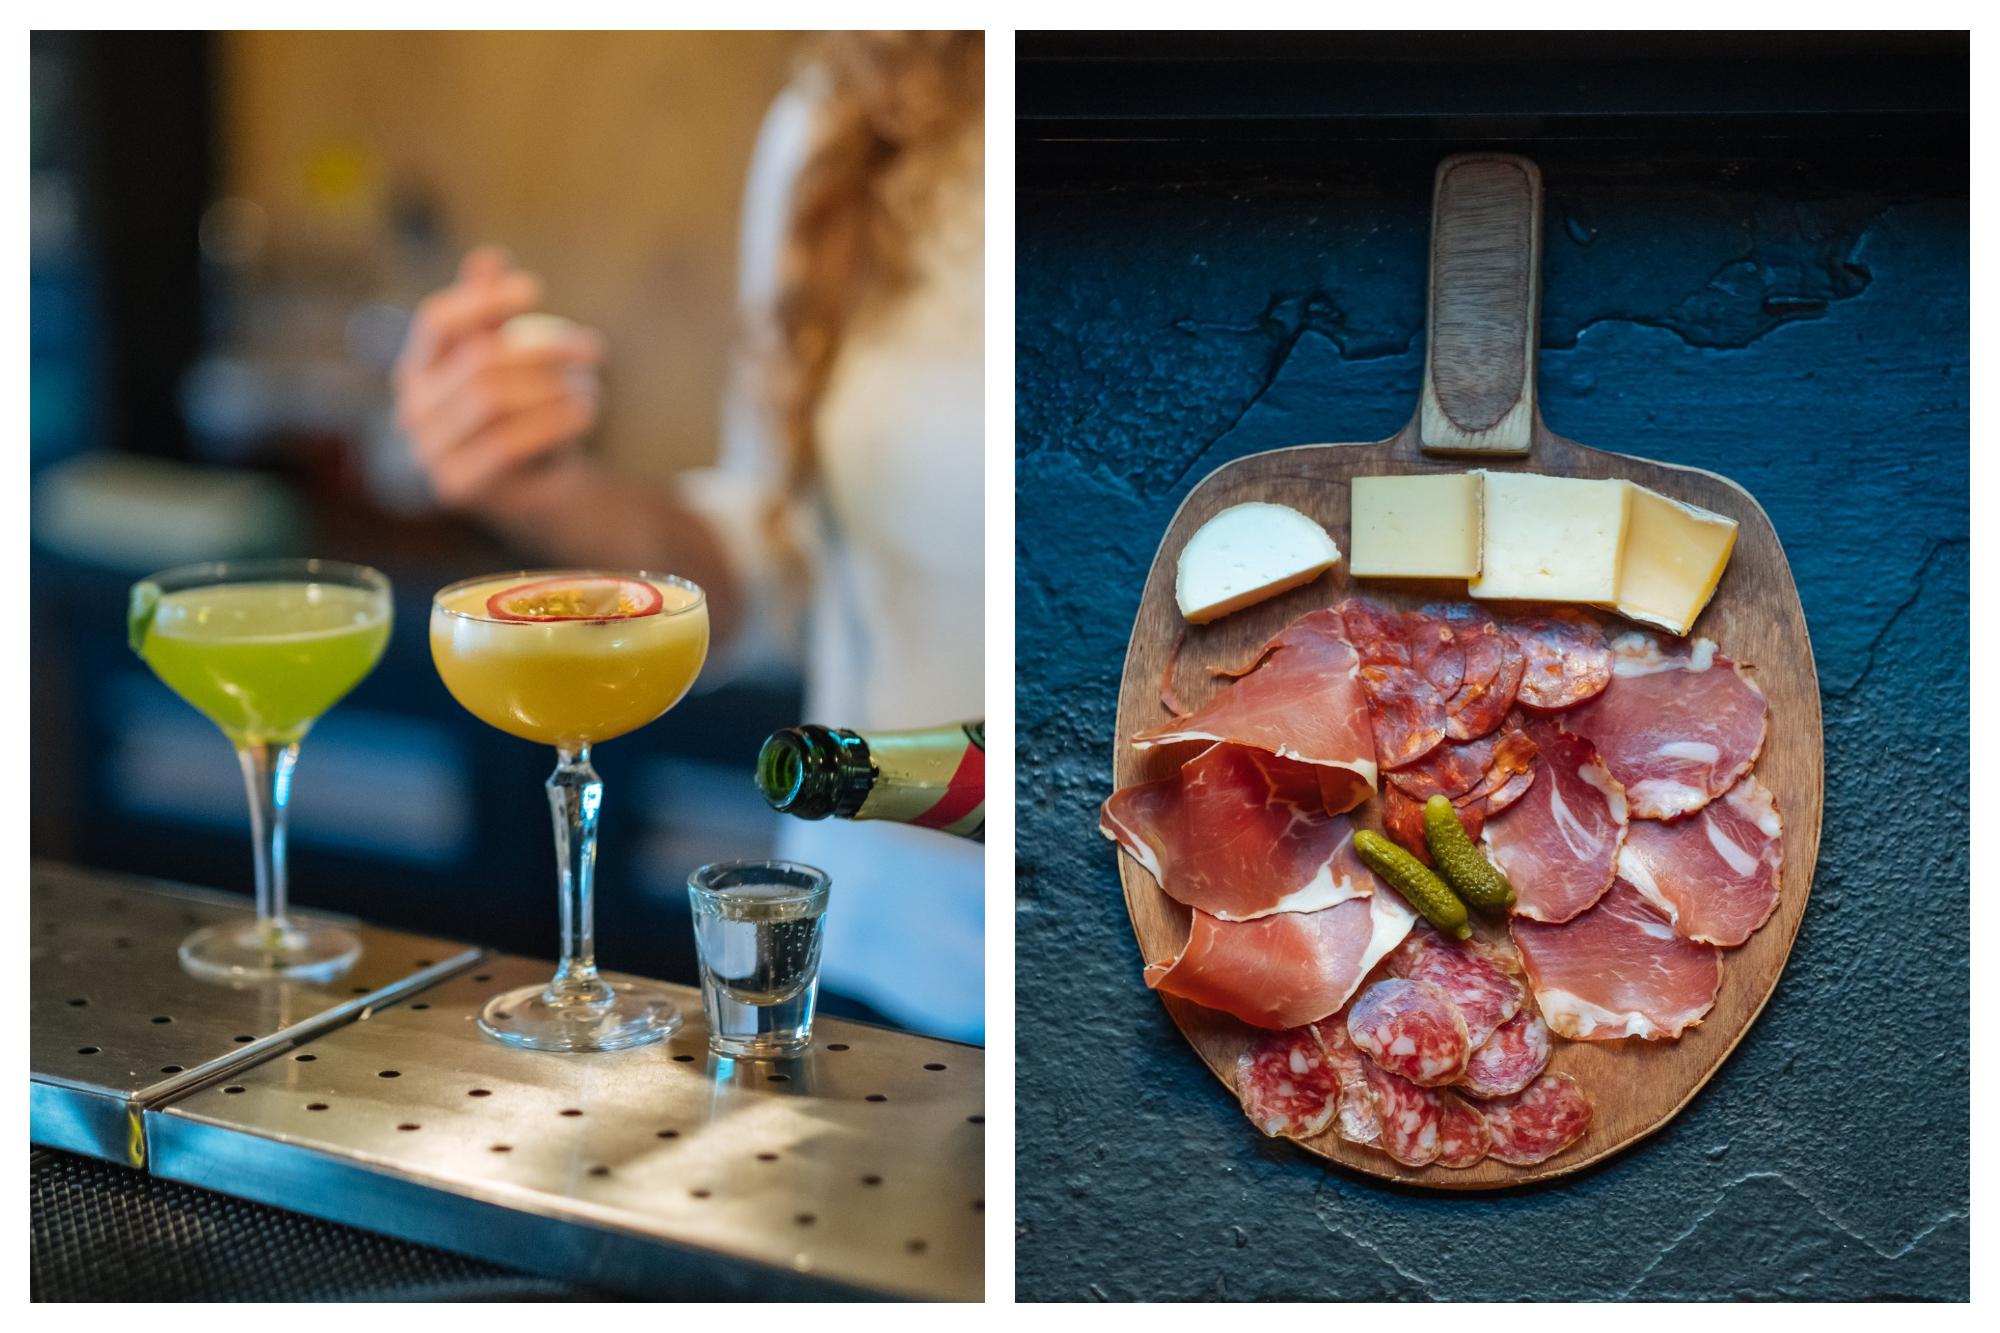 On left: A bartender serves up electric-colored drinks at Gossima Ping Pong Bar in Paris' 11th arrondissement. On right: Gossima Ping Pong Bar serves up cheese and charcuterie boards as the perfect snack between games.